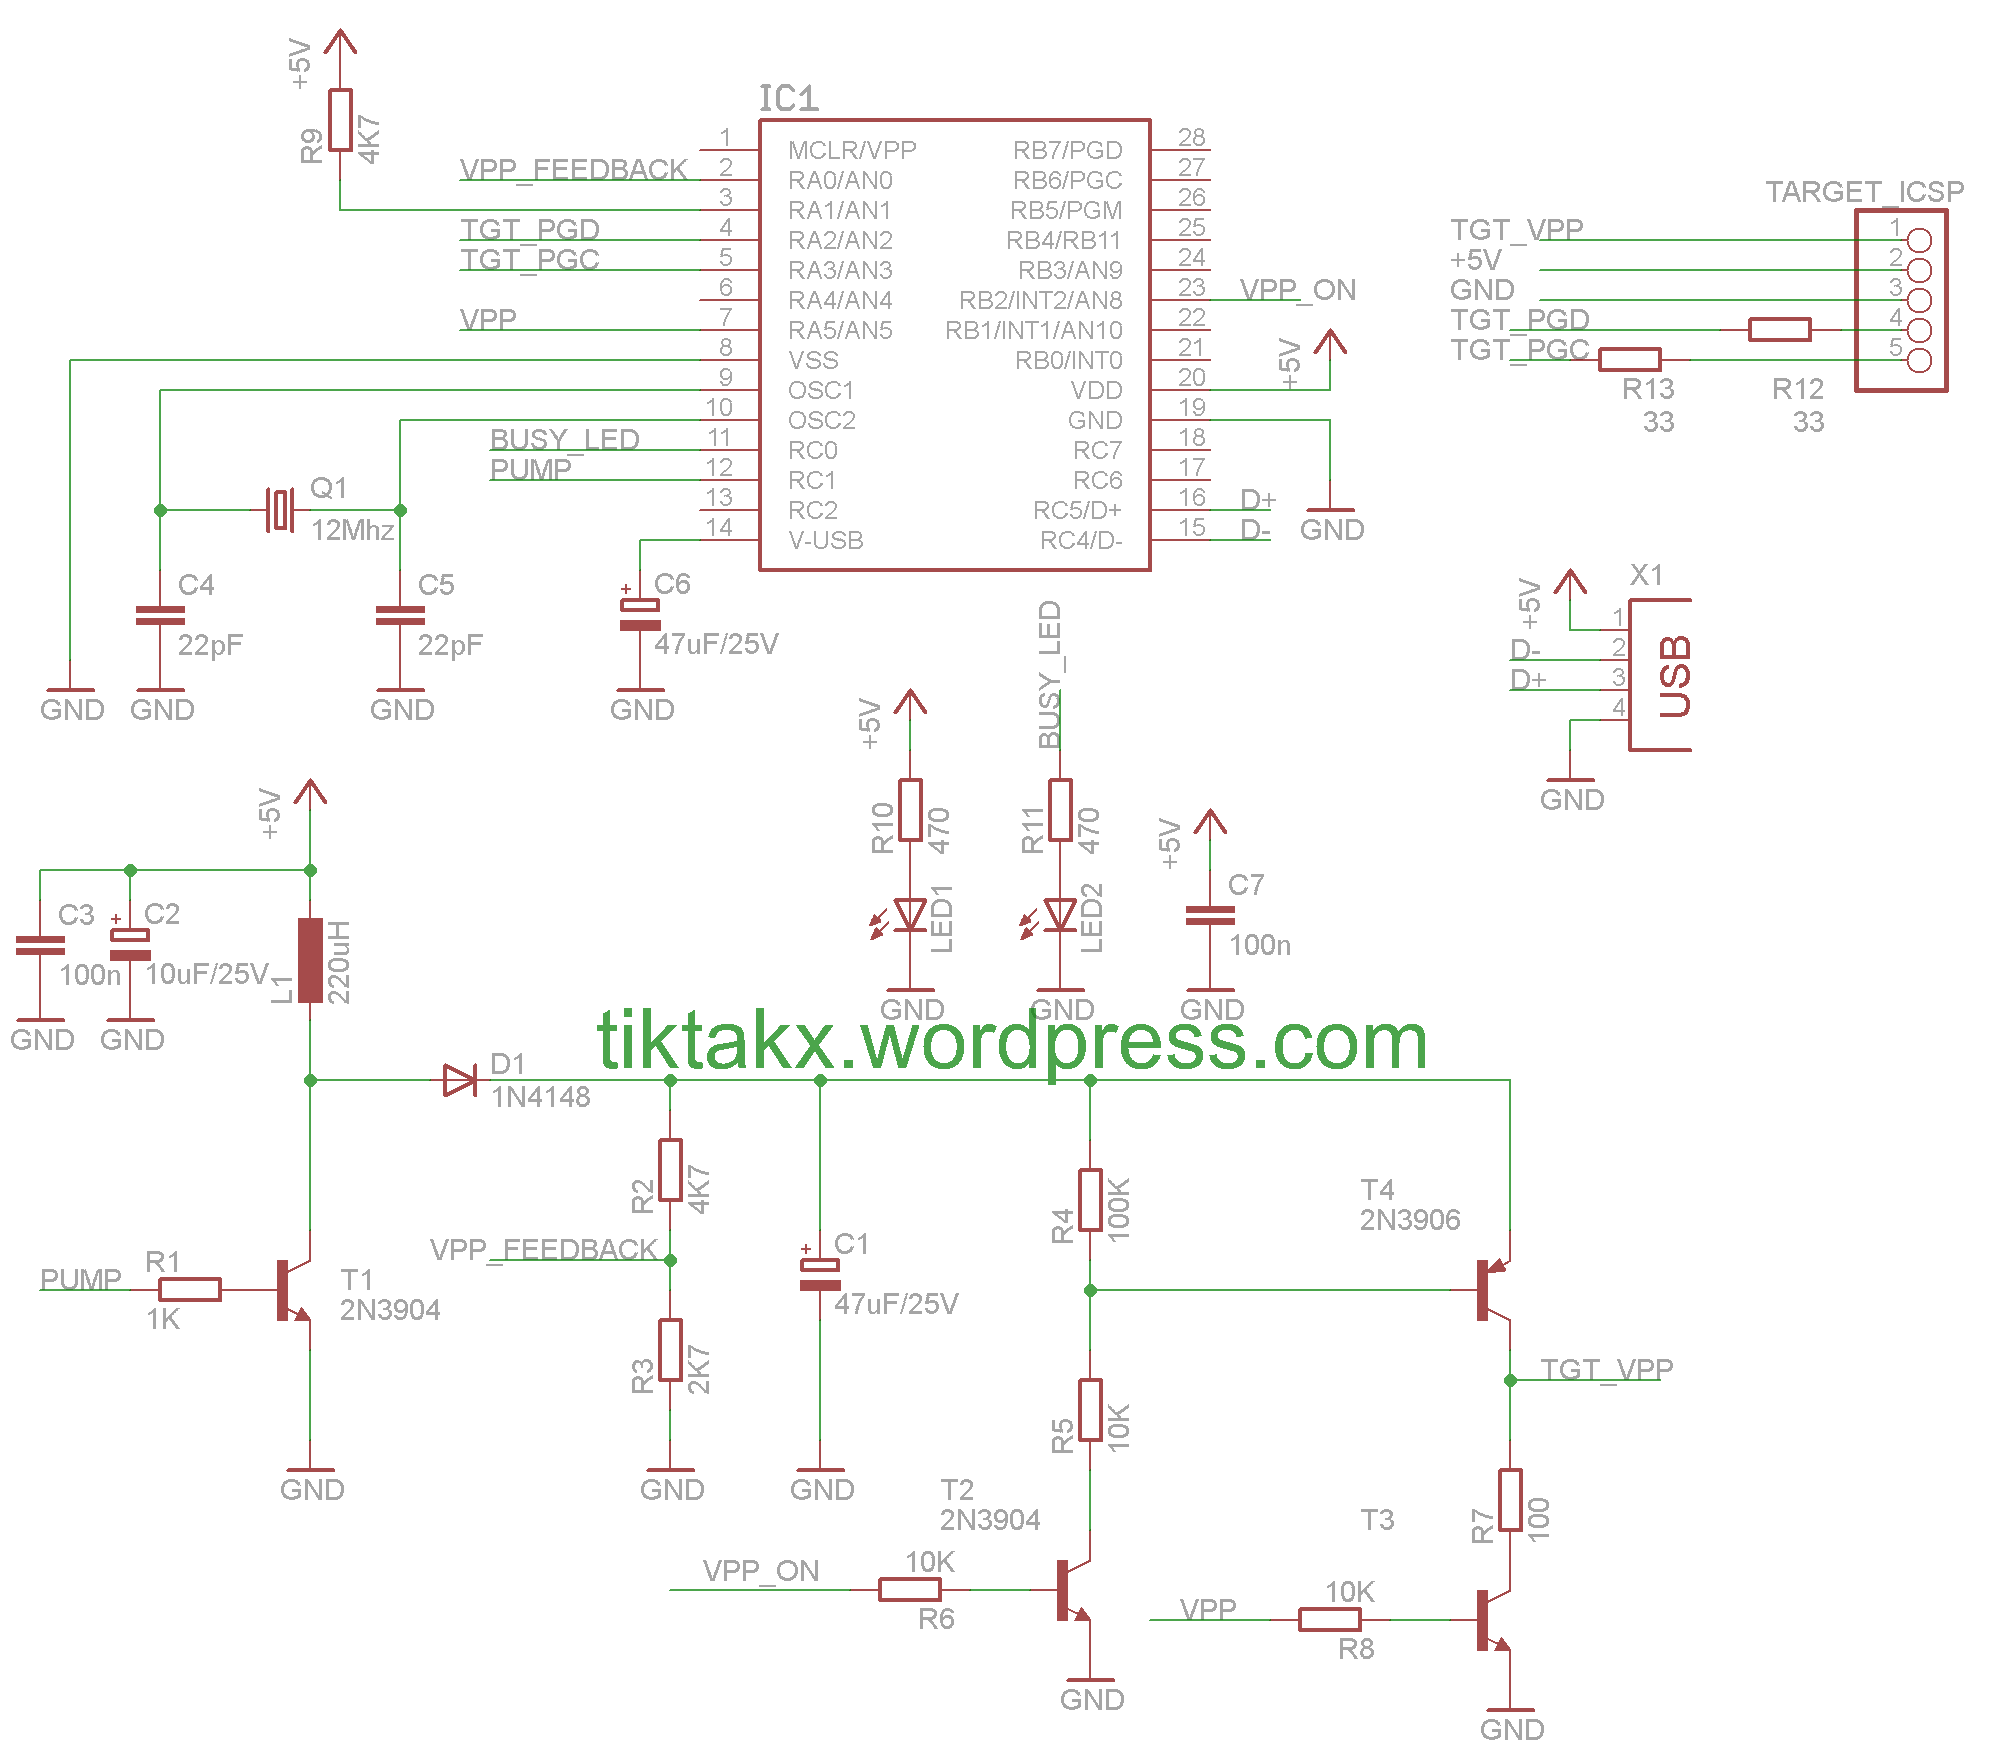 pickit 2 programmer circuit diagram mile marker 8000 winch wiring digital electronics tiktak 39s projects page